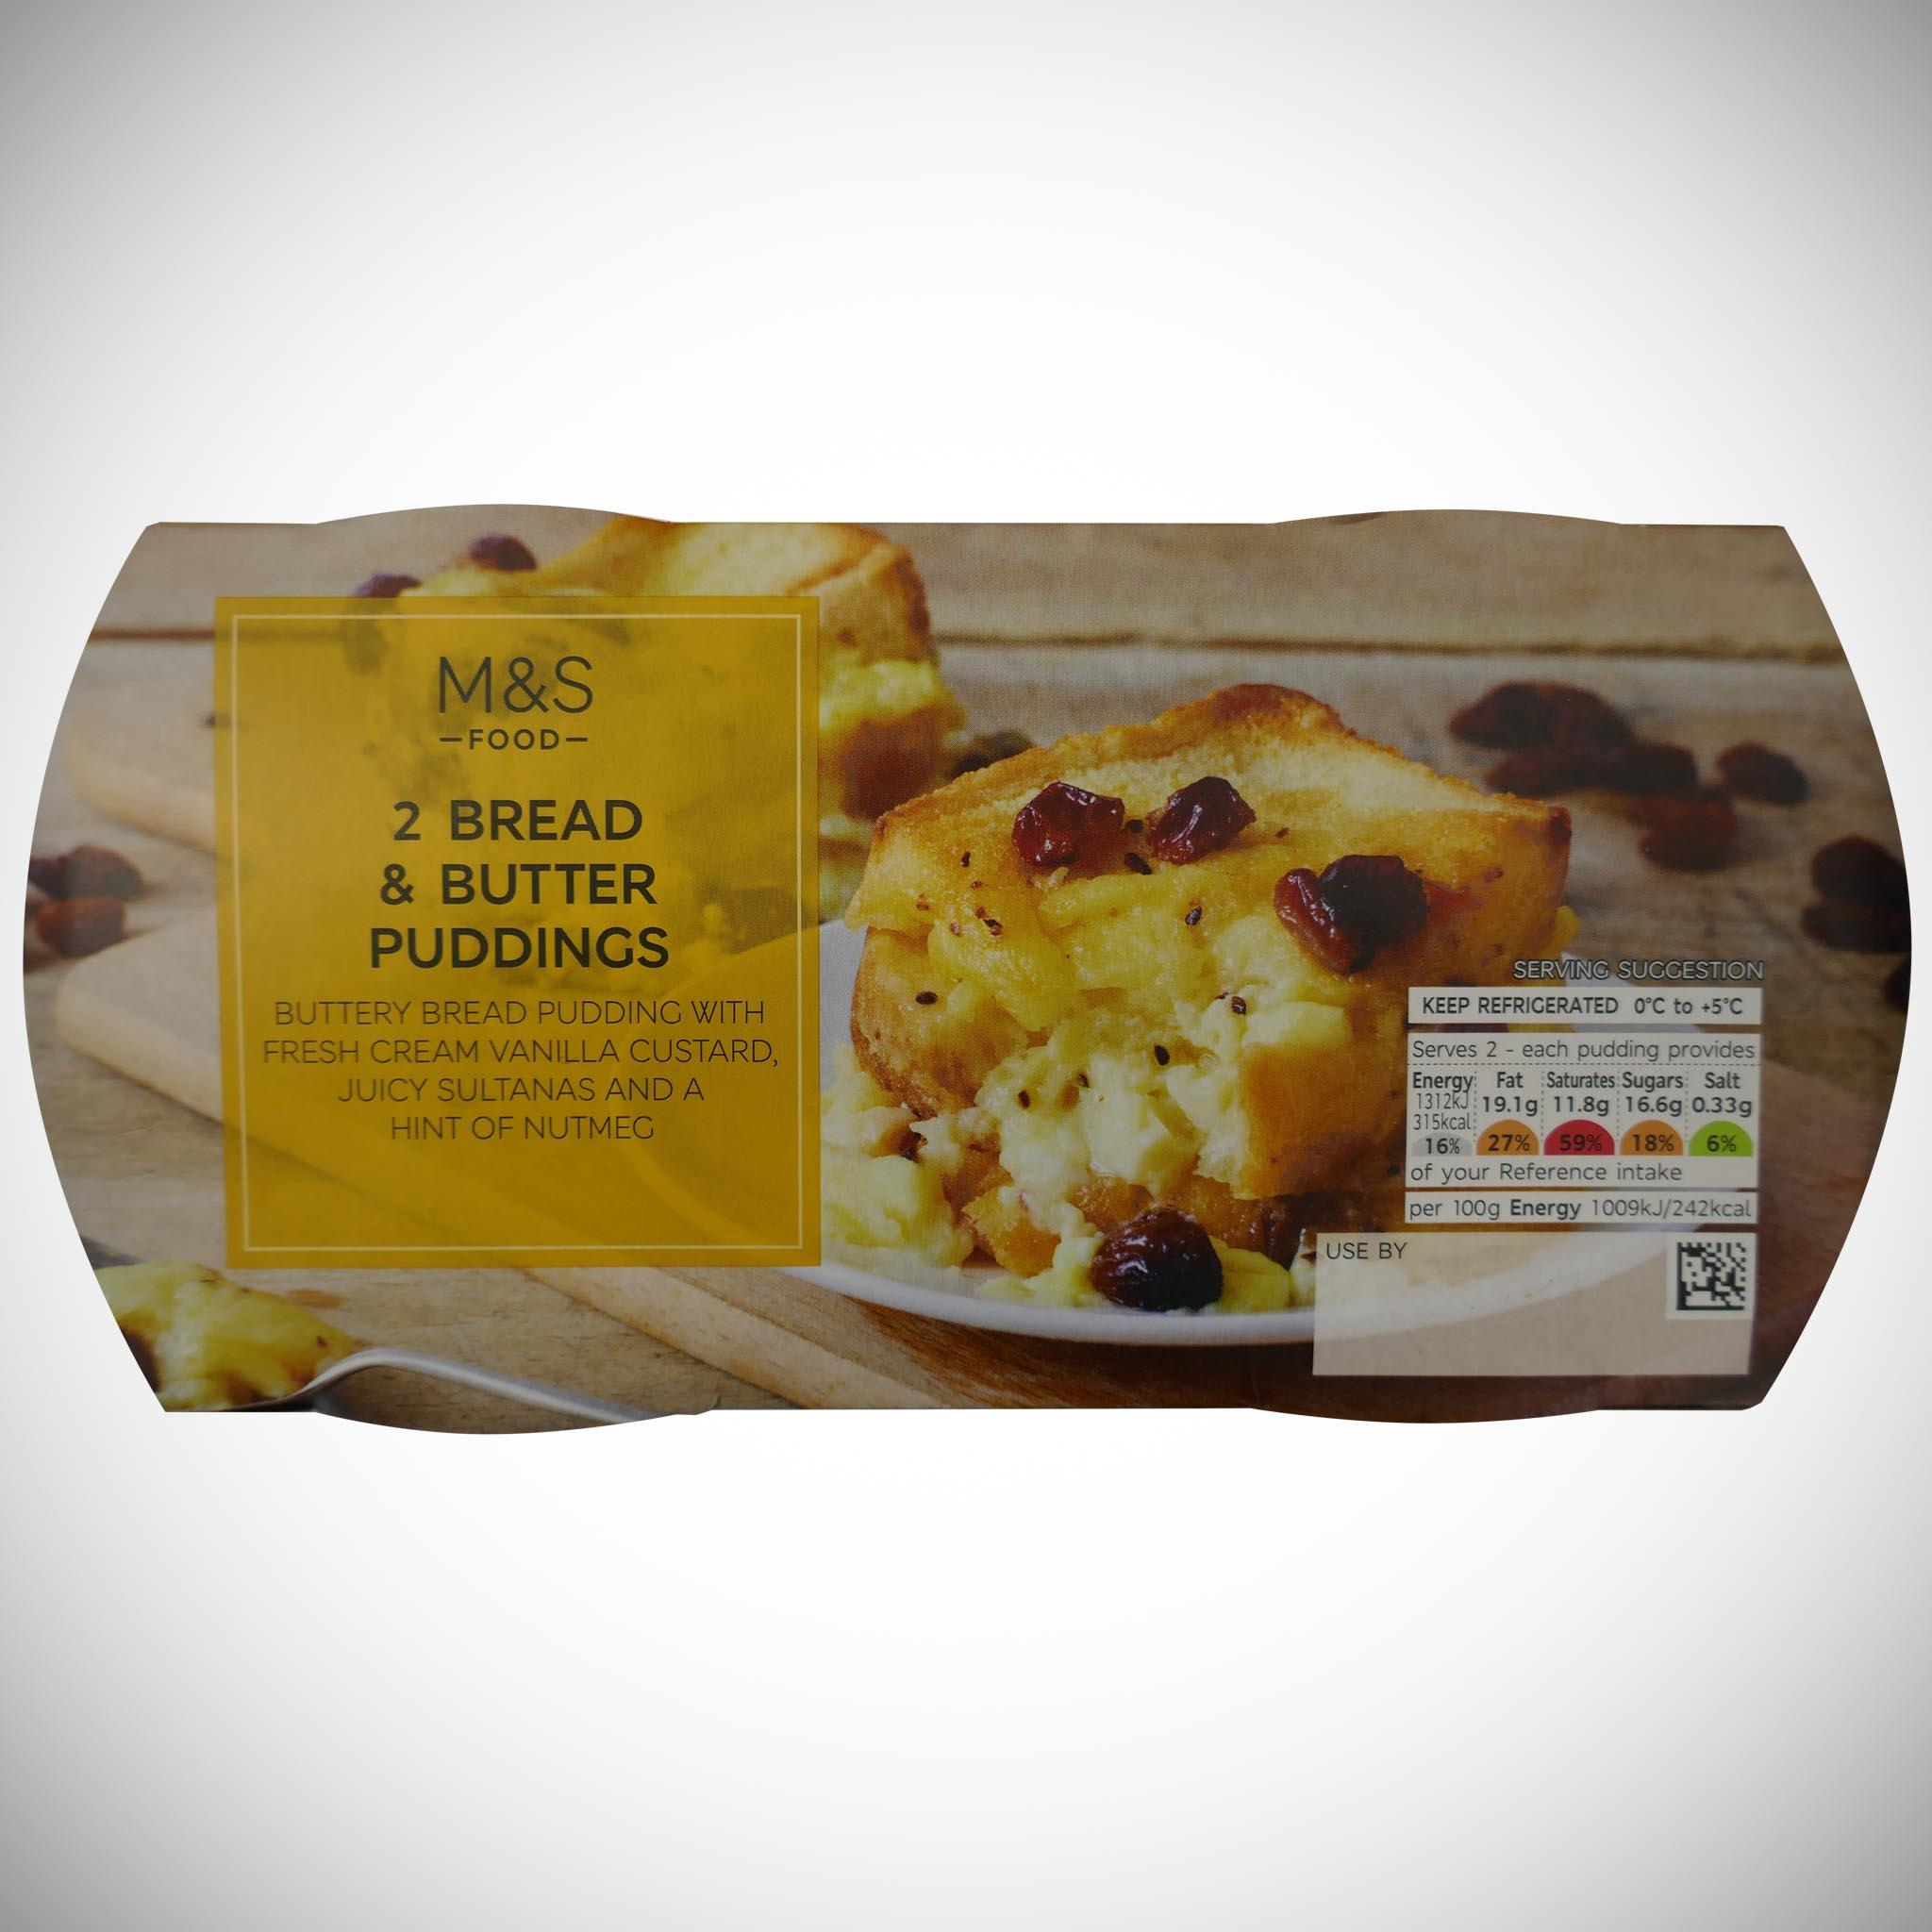 2 Bread & Butter Puddings 260g